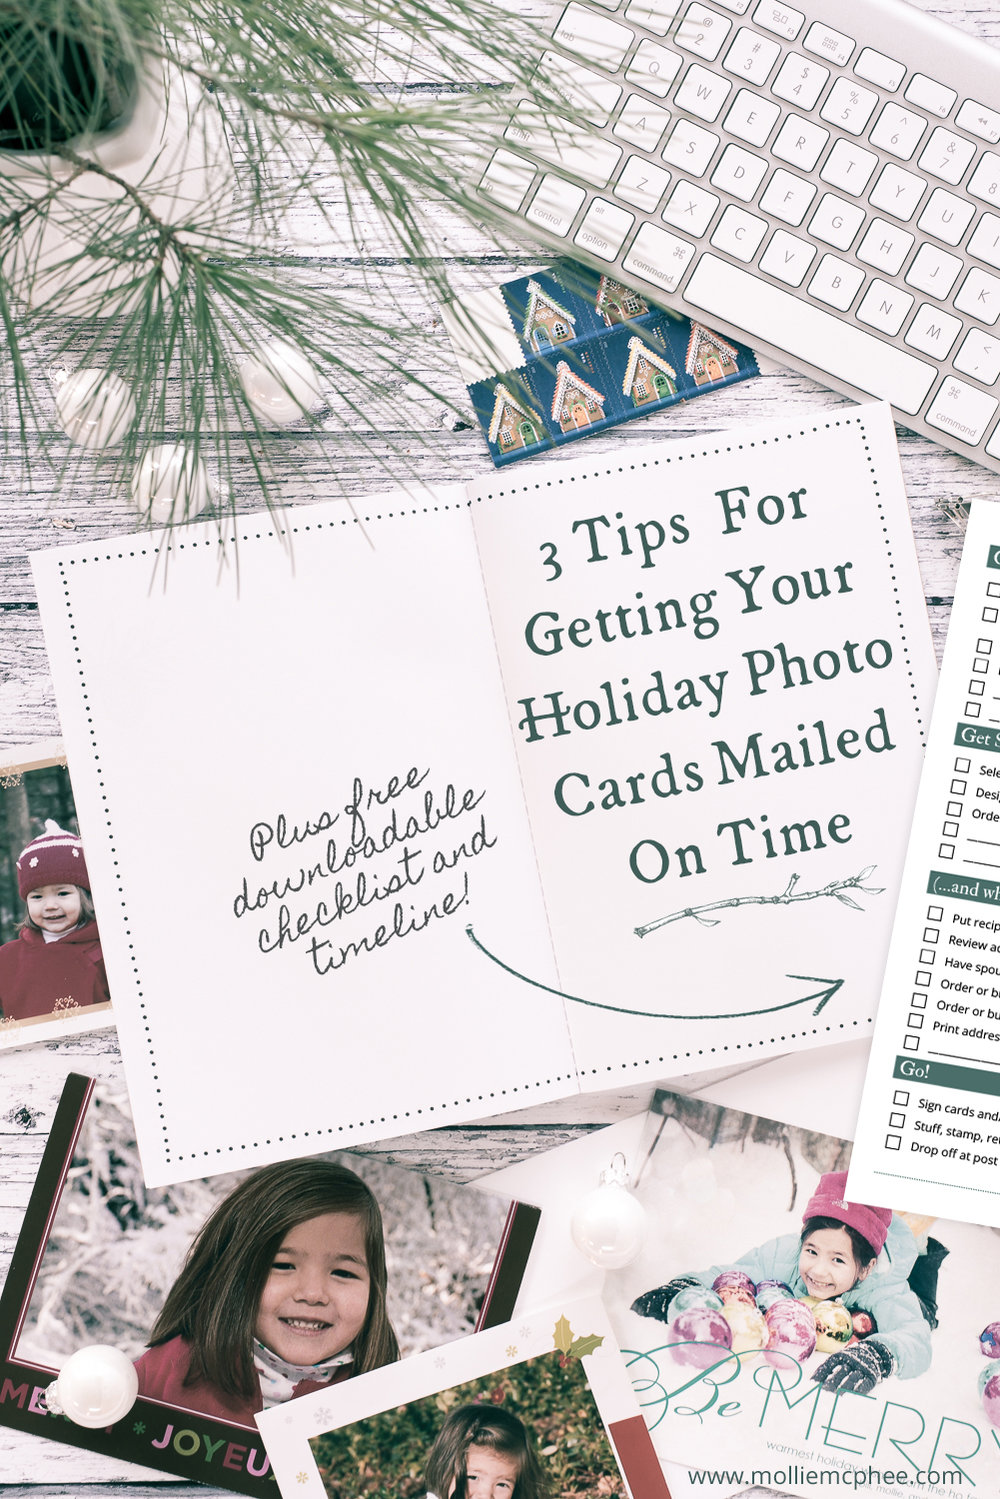 3 tips for getting your holiday photo cards mailed on time (plus downloadable checklist and timeline!)